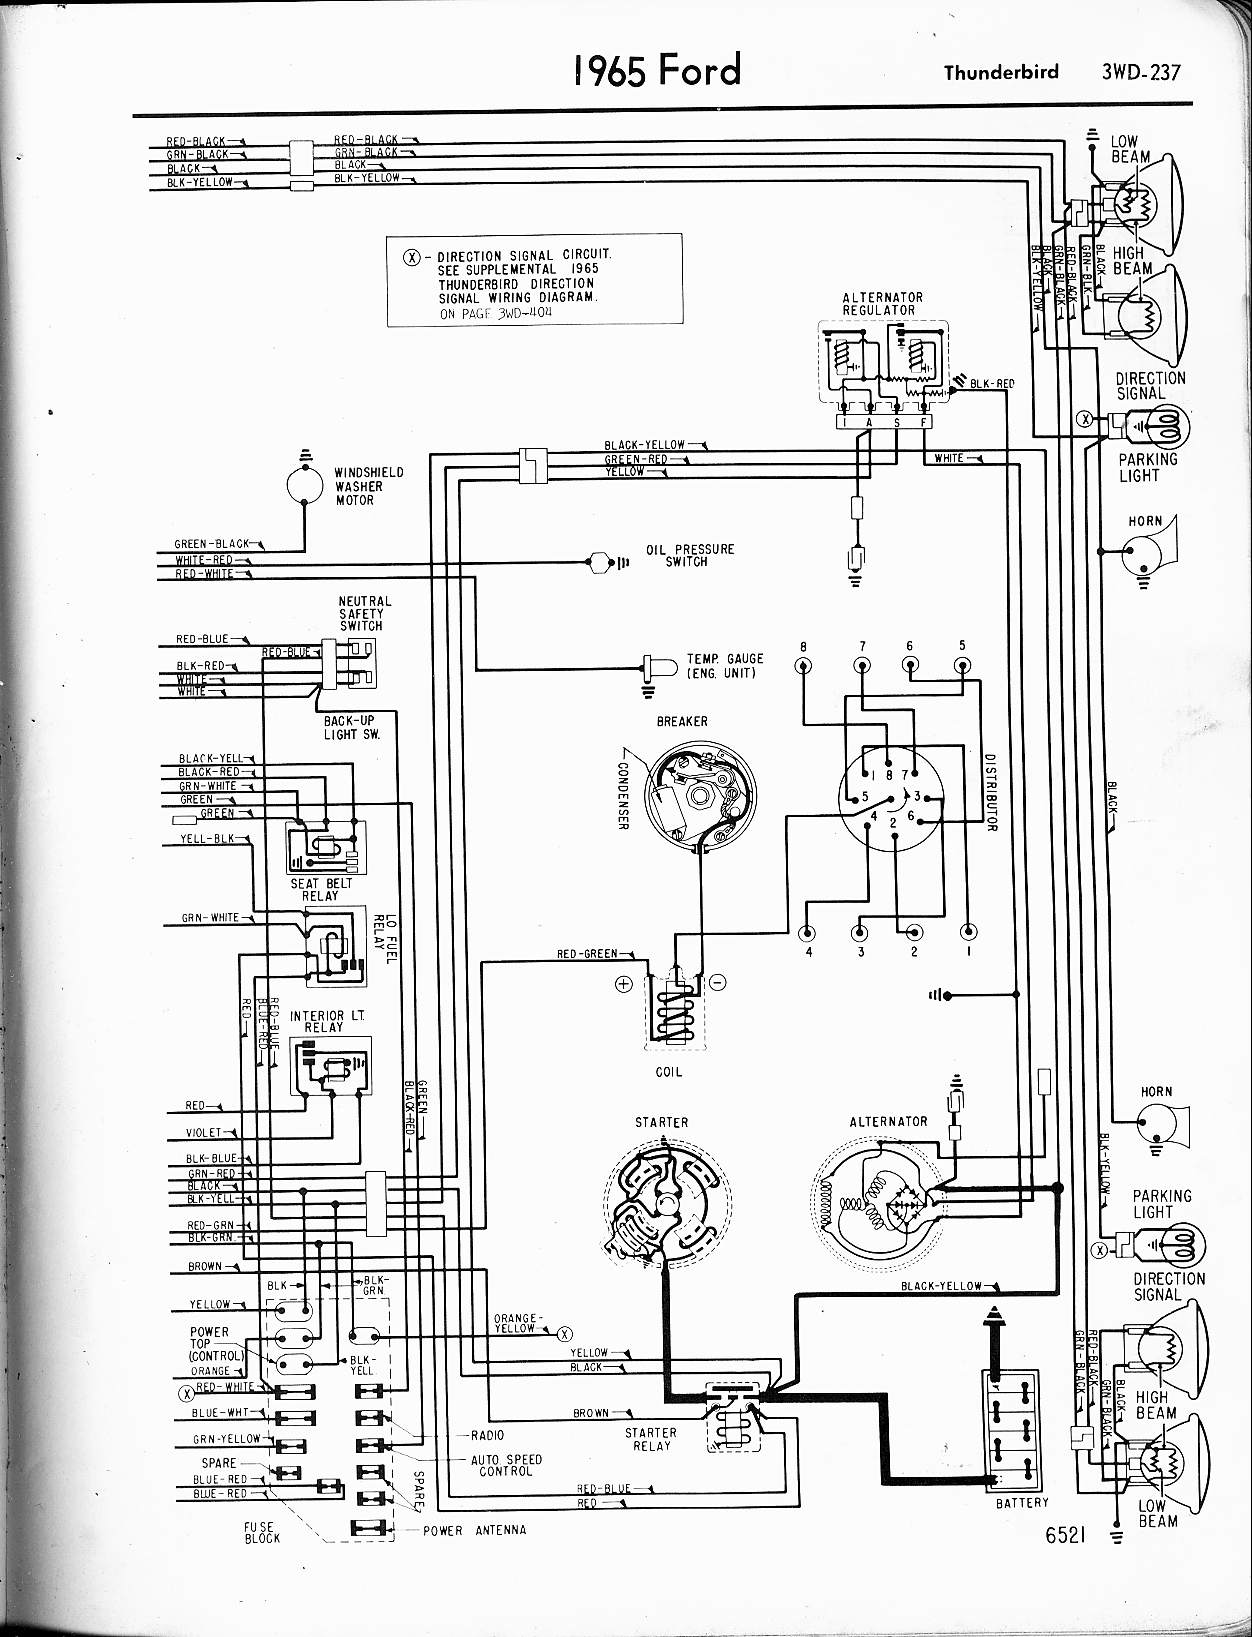 MWire5765 237 57 65 ford wiring diagrams 1963 ford thunderbird fuse box location at edmiracle.co